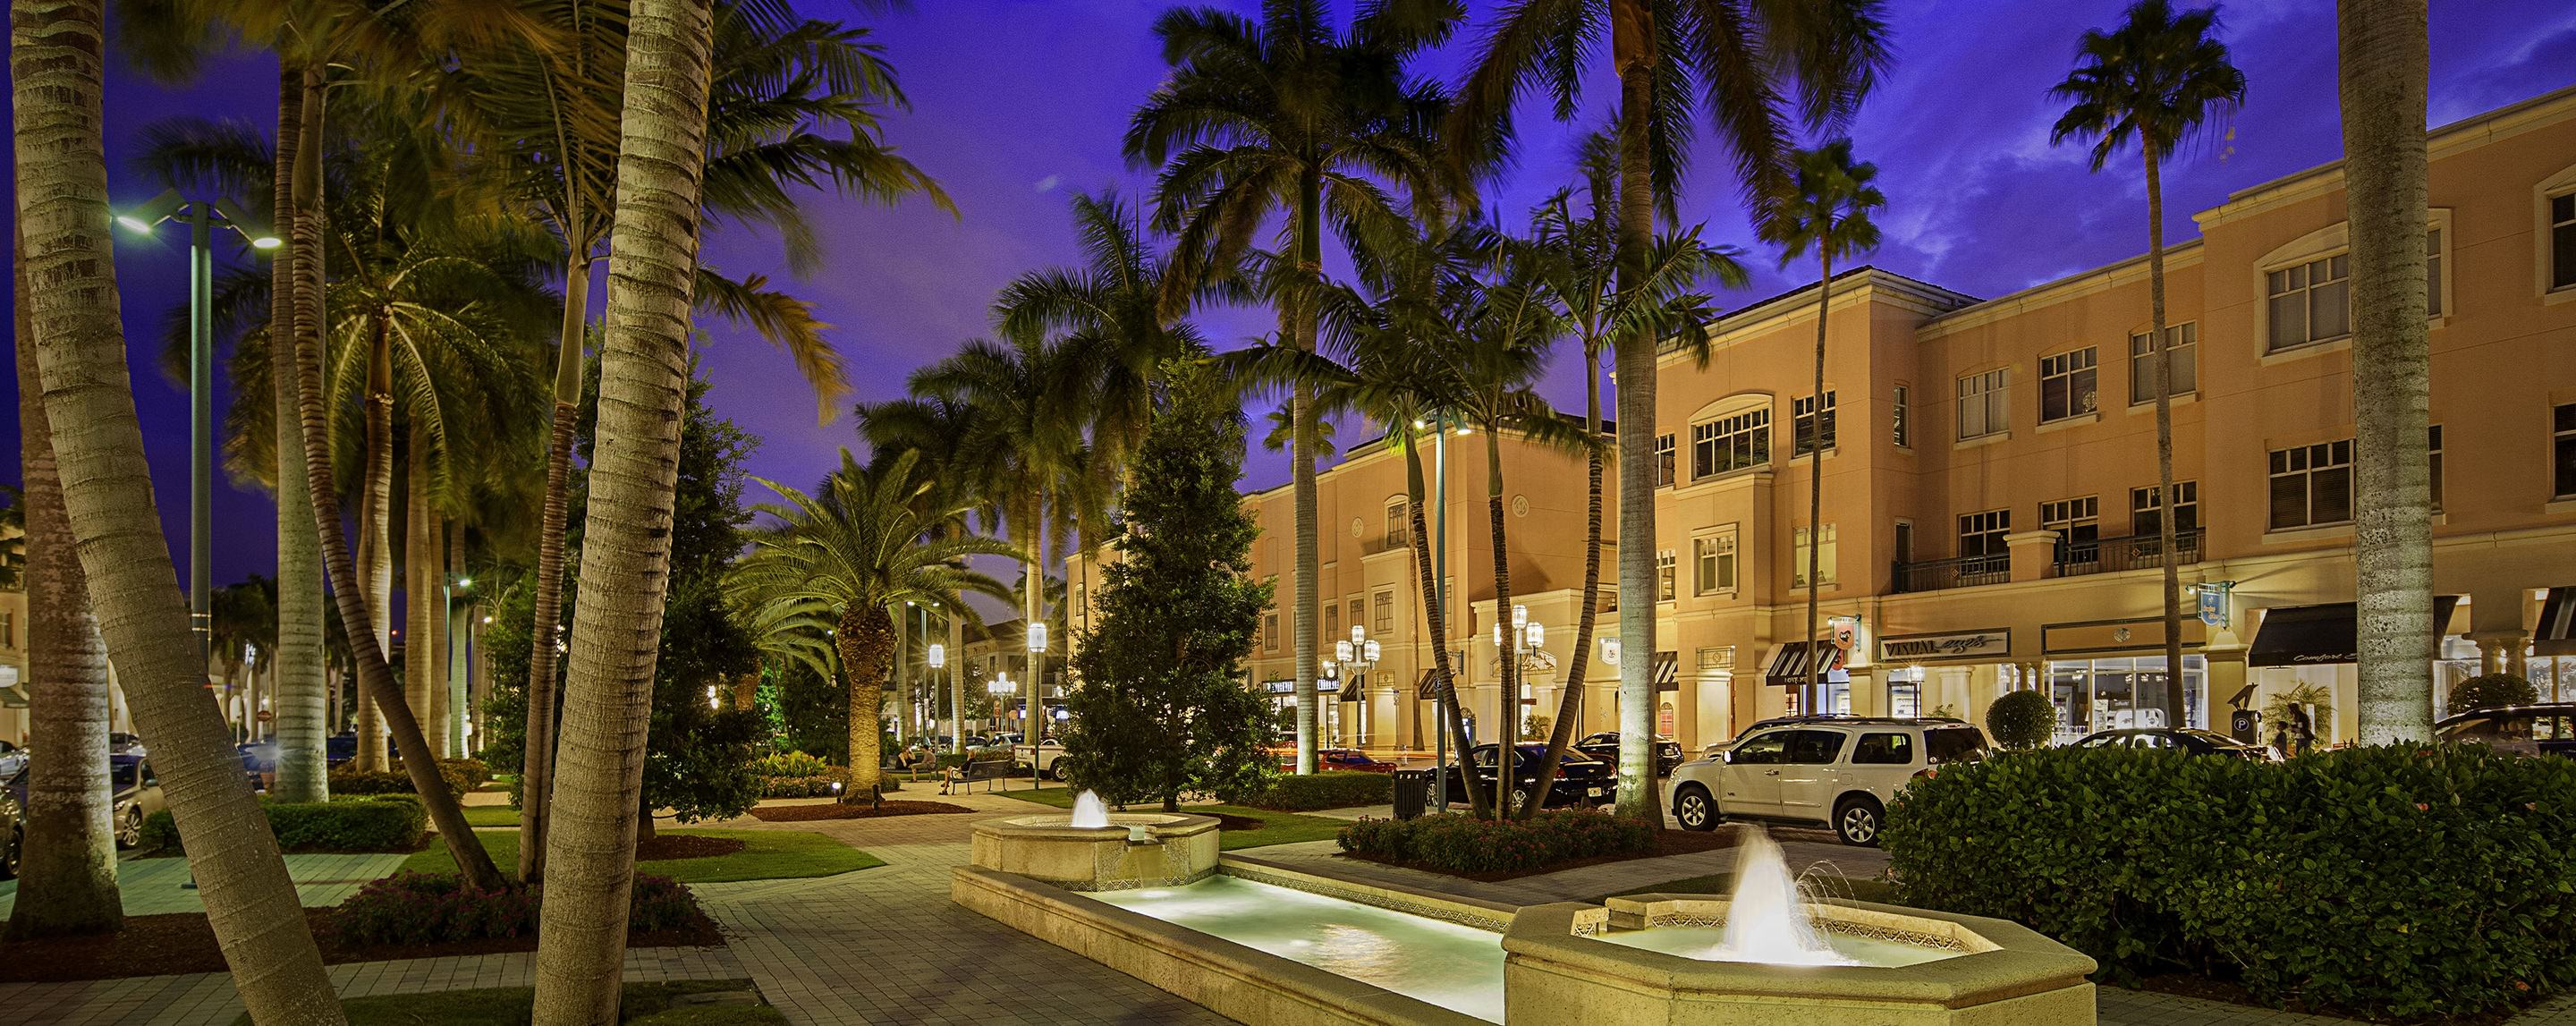 A large courtyard with several fountains and palm trees.